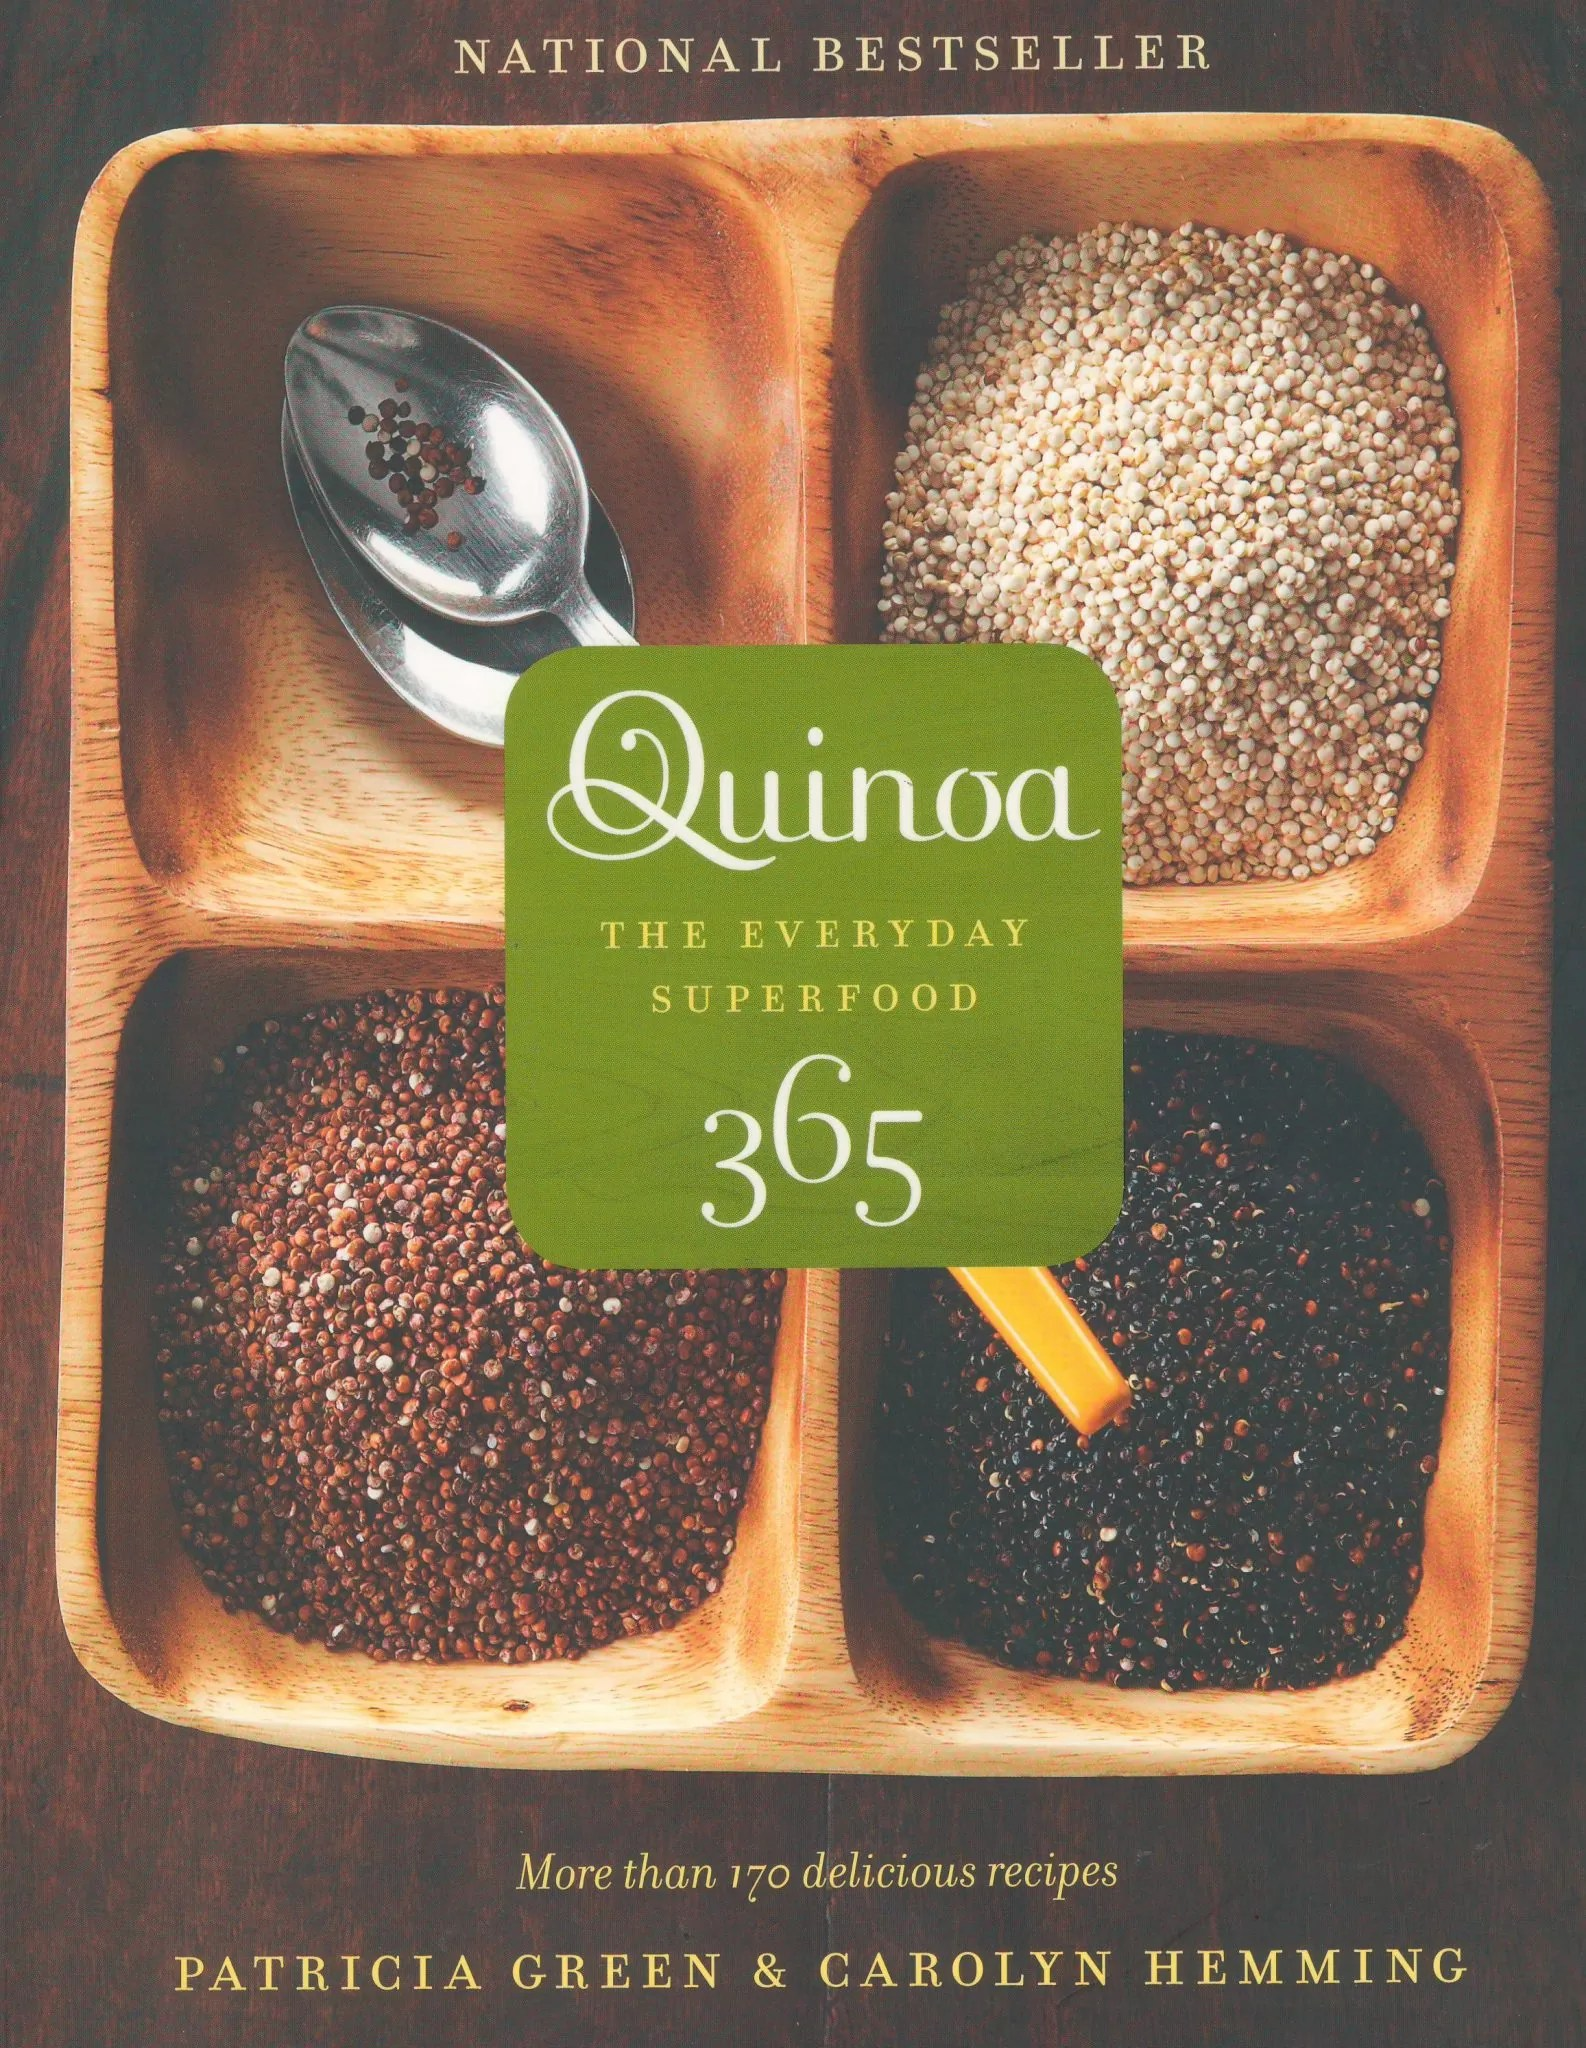 Mi Dieta Vegana Libro Quinoa 365 The Everyday Superfood Mi Resolución De Año